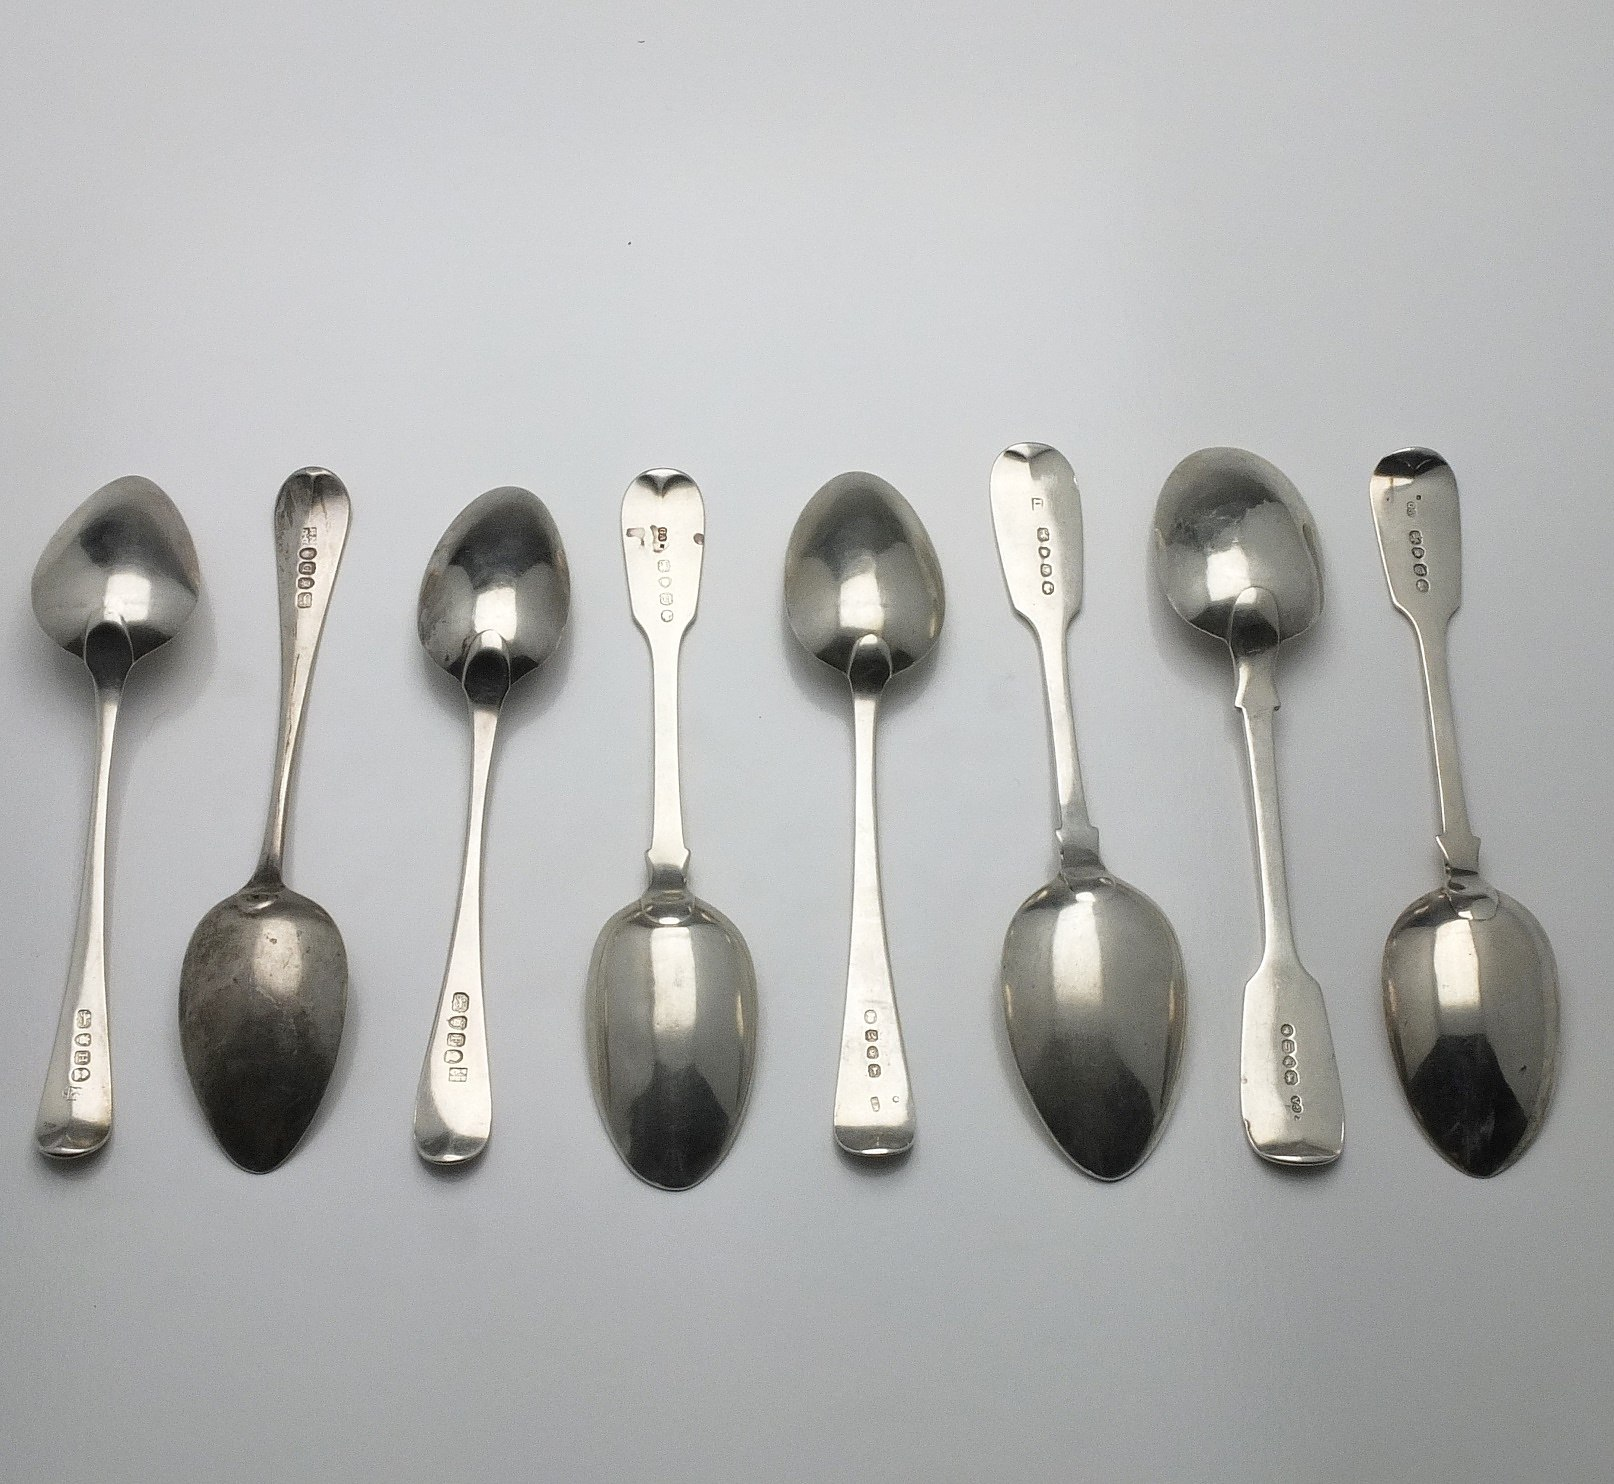 'Eight Various Sterling Silver Spoons, Including London 1855, 1863, 1851, 1807, 1803, 1801, 1799, 1844'